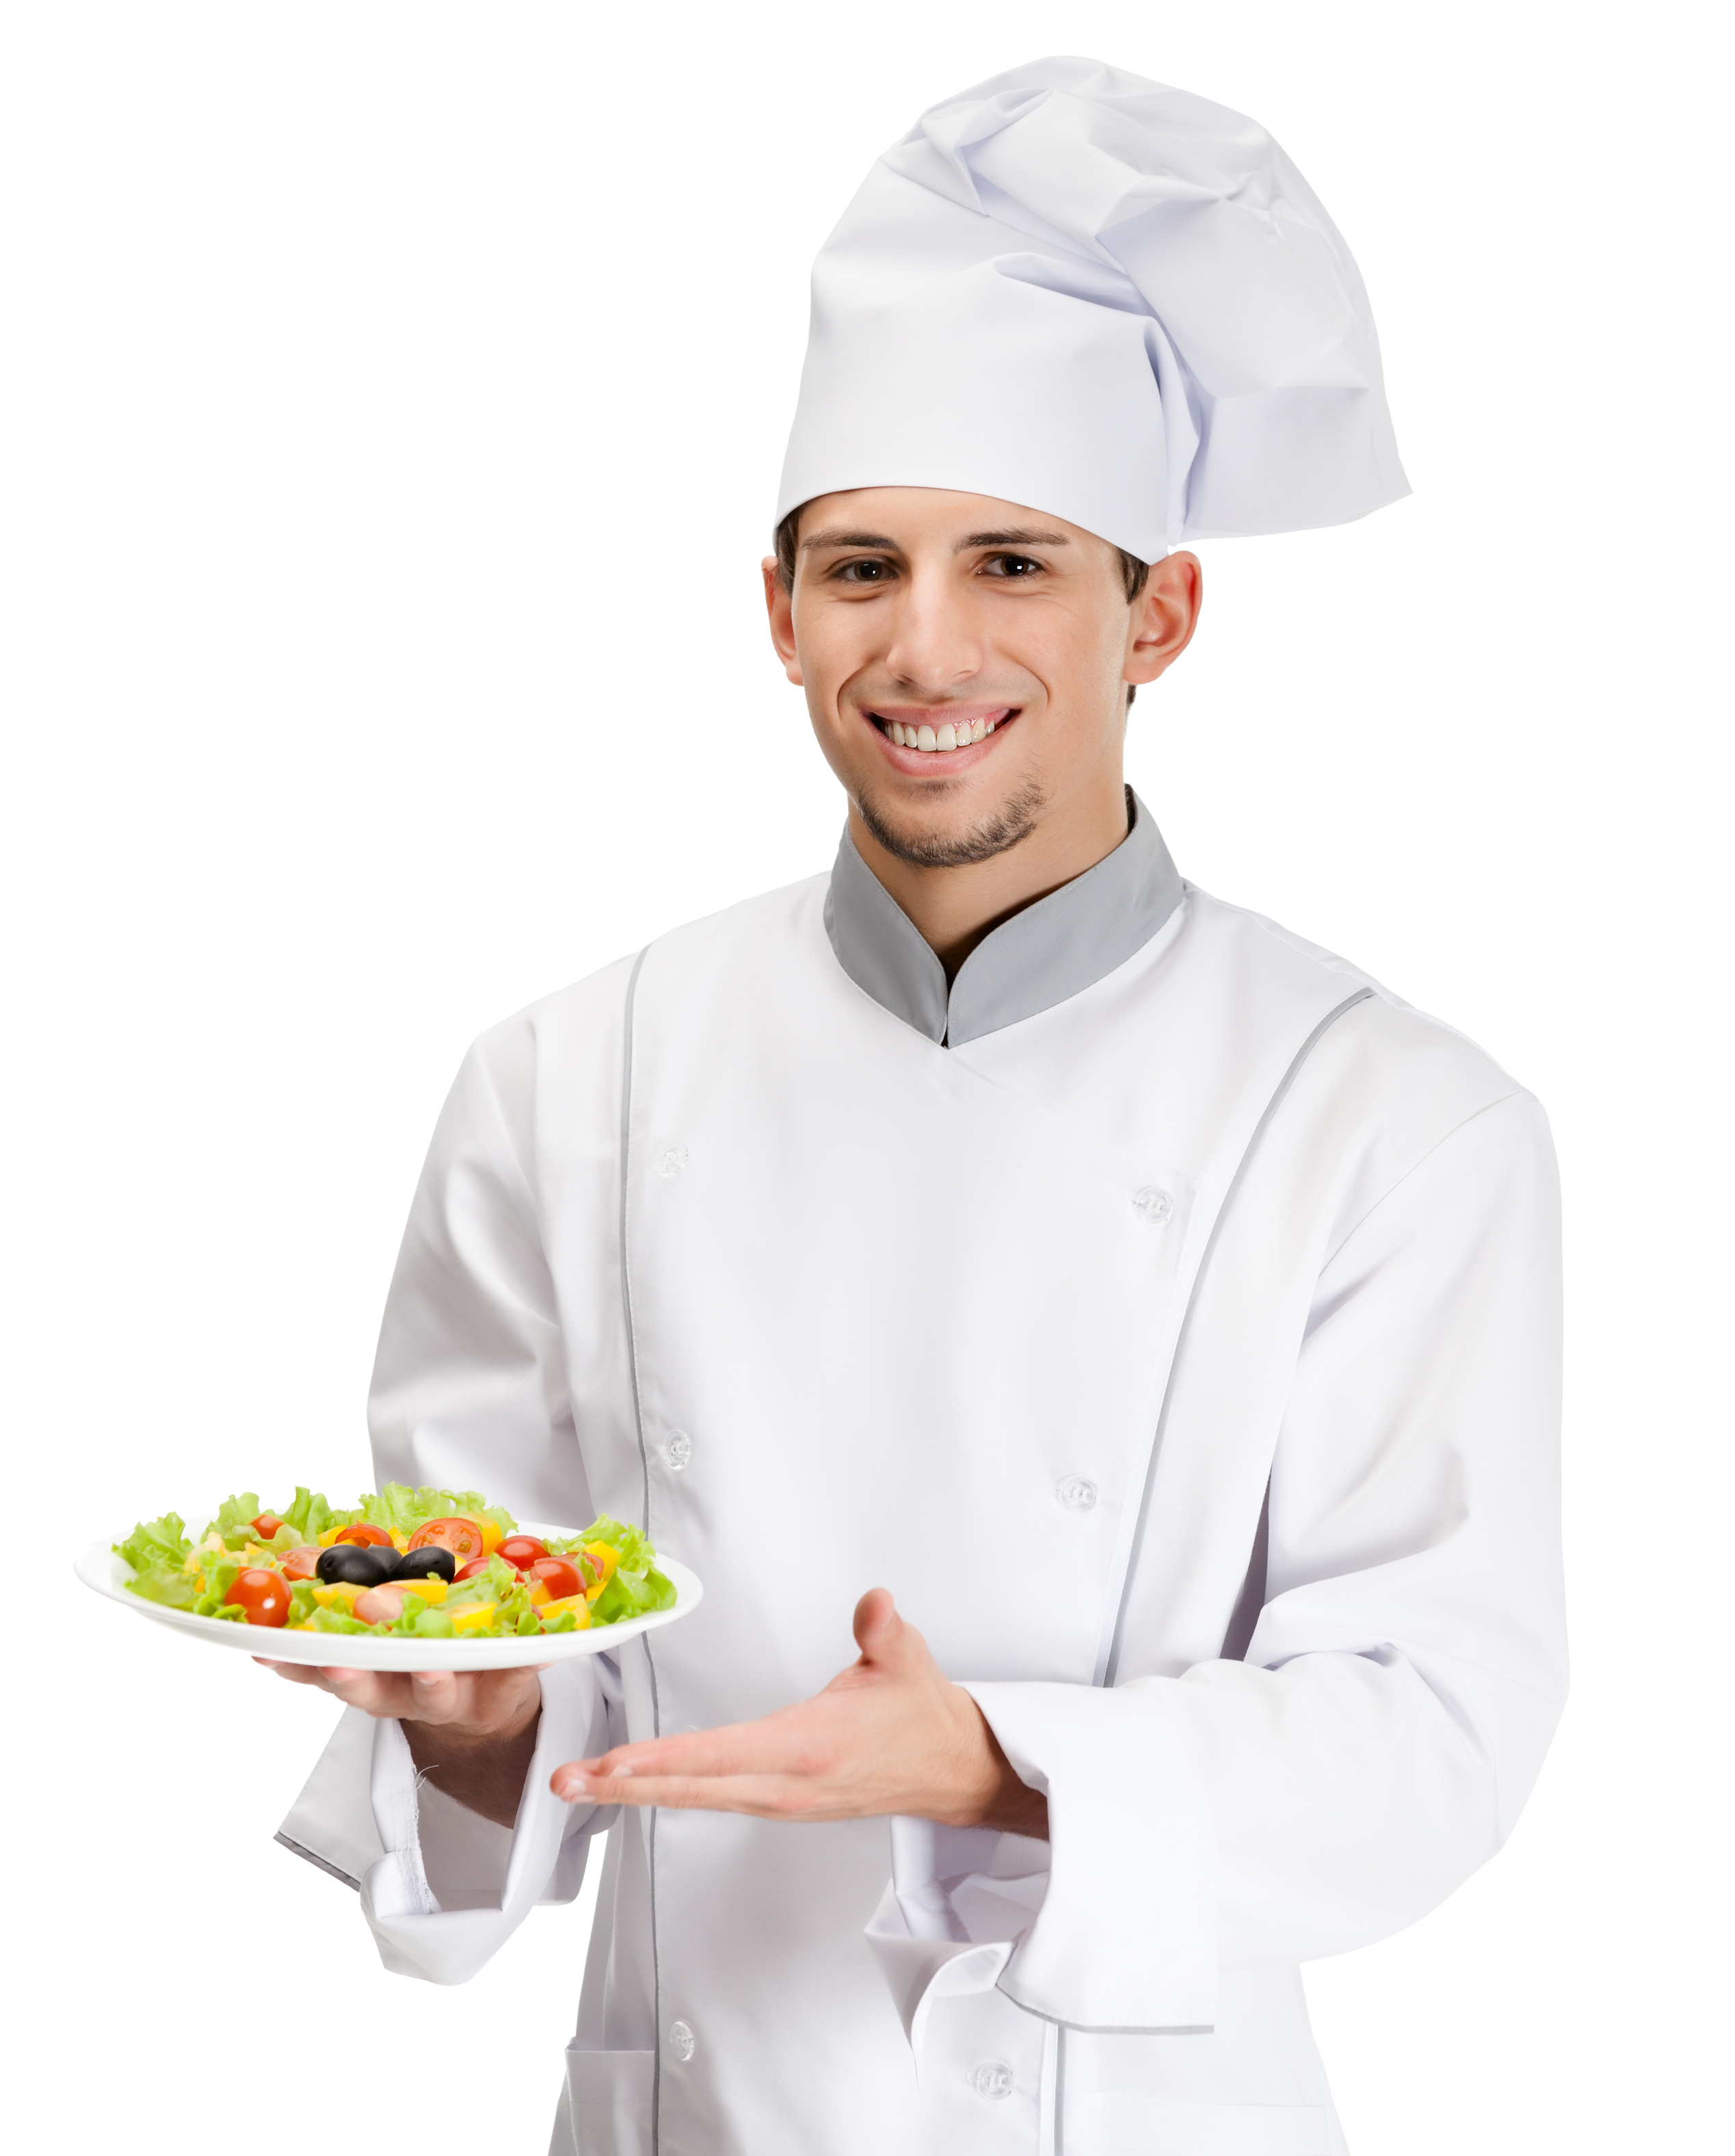 Chef Png Image Chef Images Food Cost Thai Style